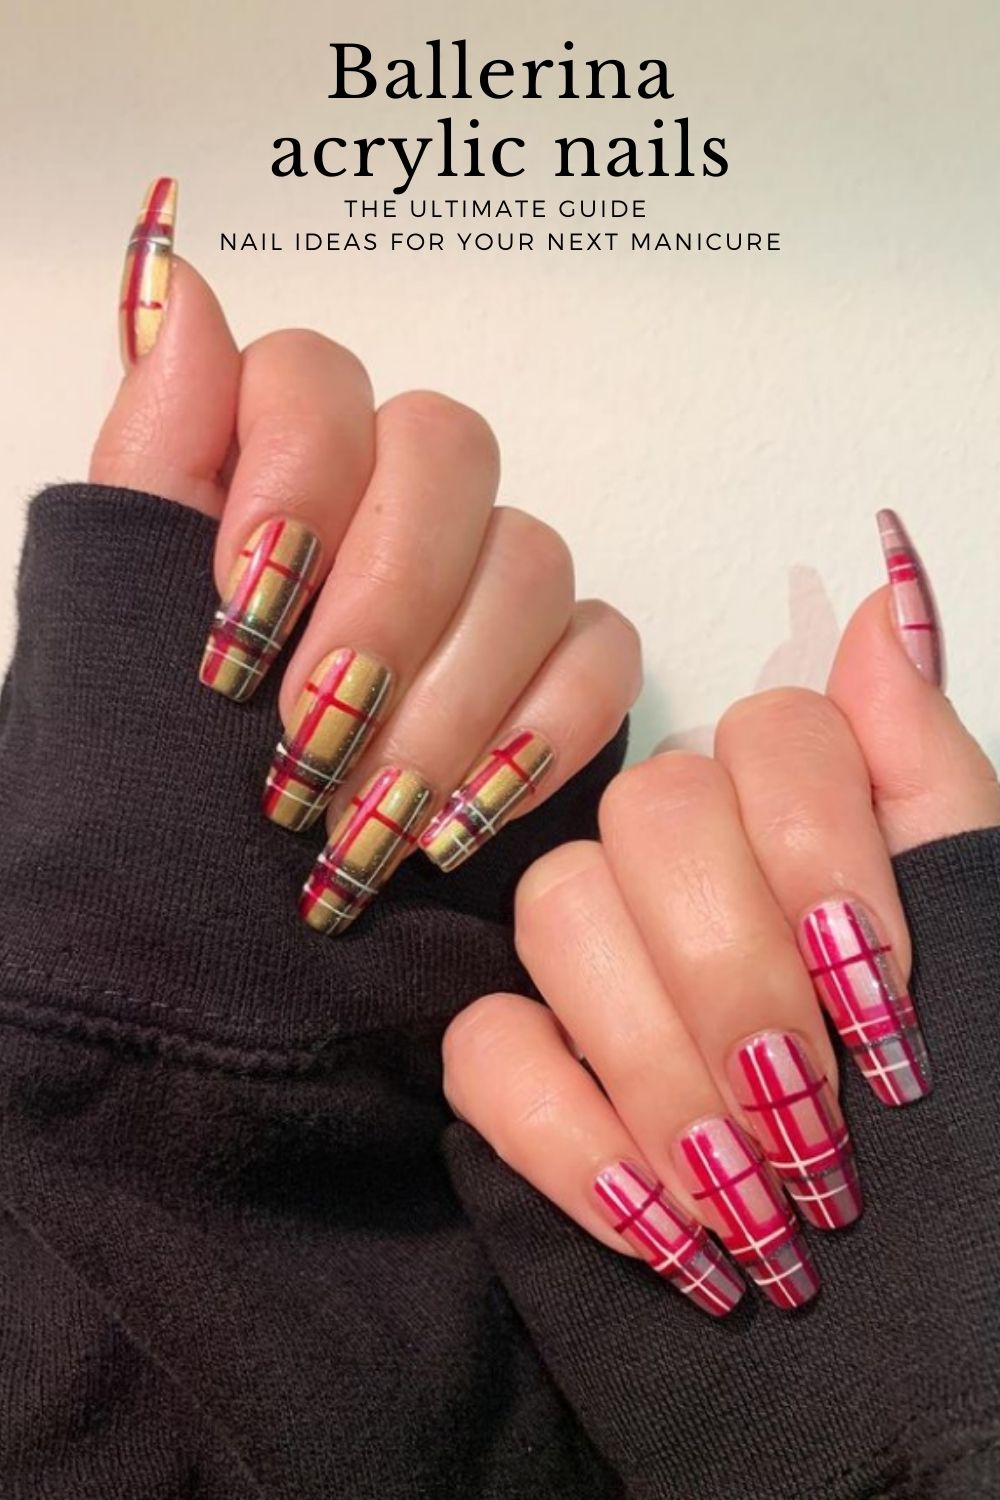 Ballerina acrylic nails   the ultimate guide nail ideas for your next manicure